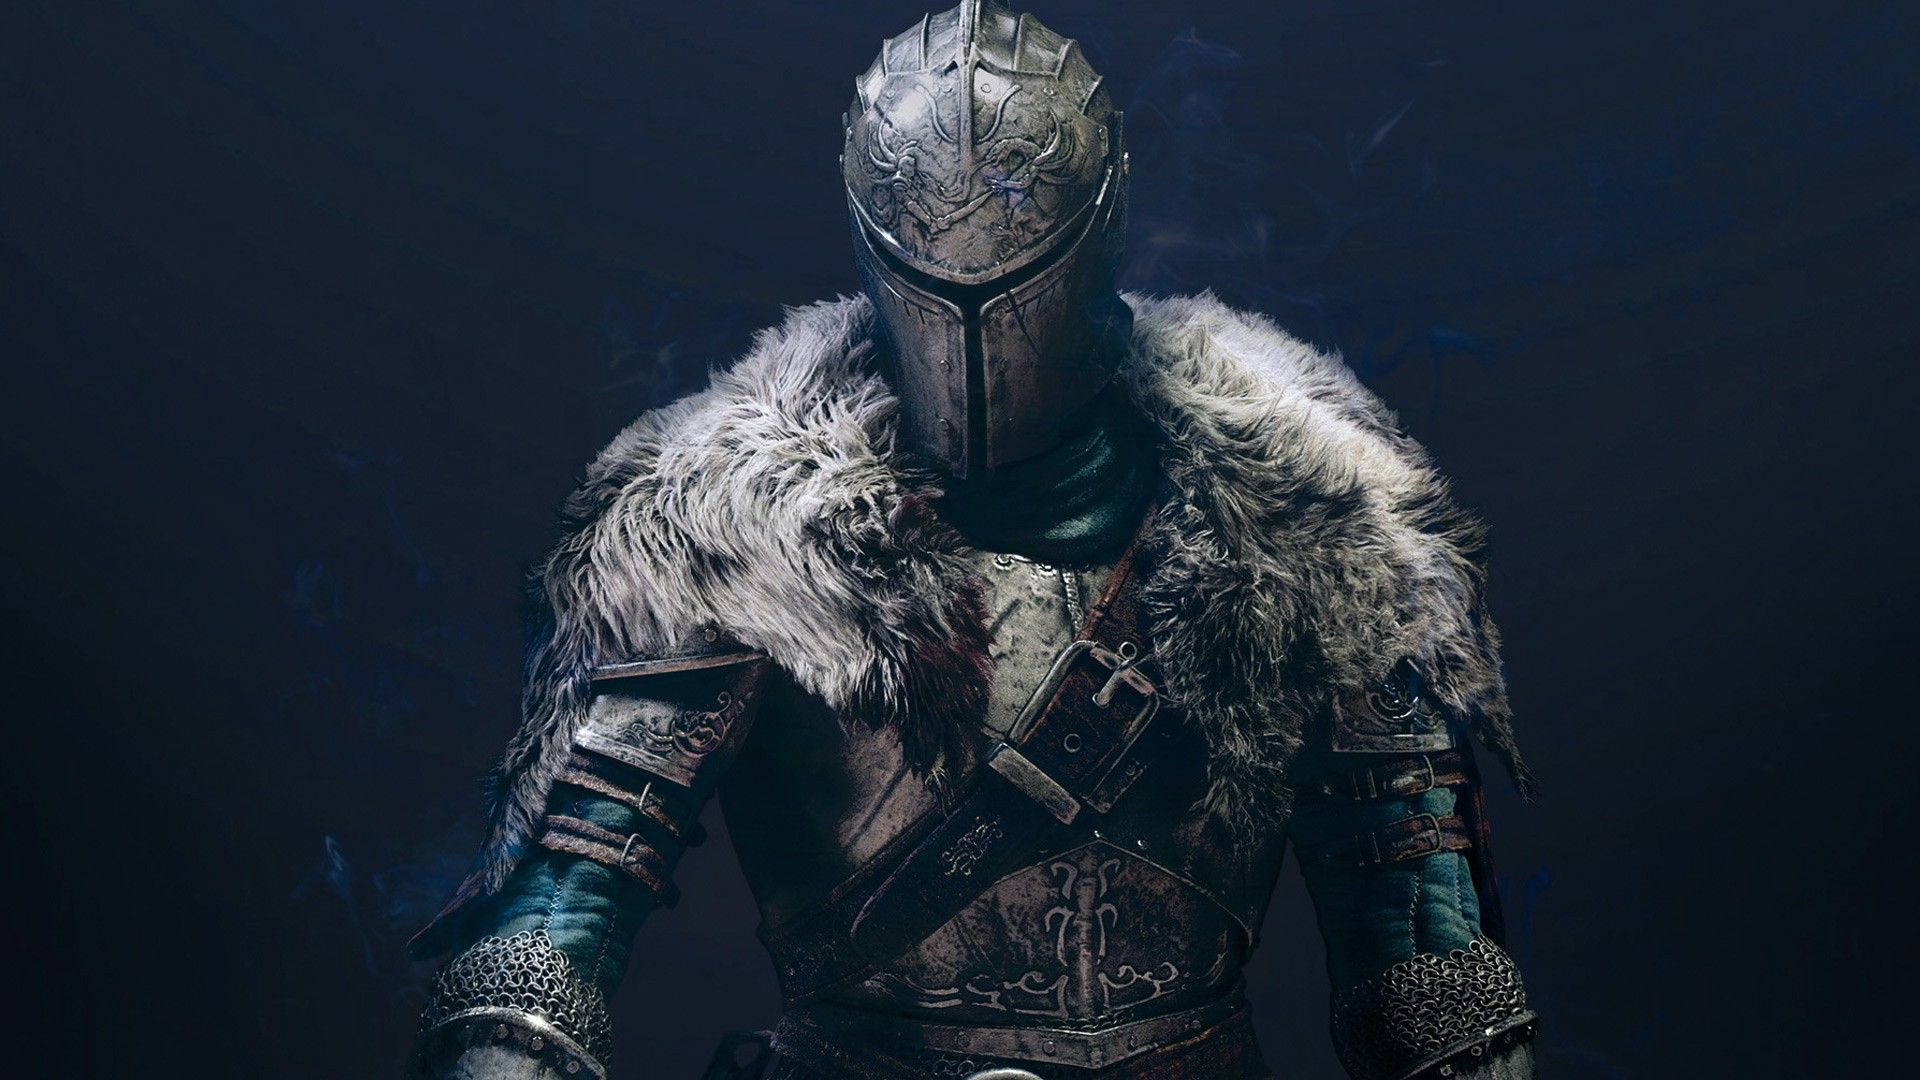 Download Dark Souls 2 Game for Windows 81 All for Windows 10 1920x1080